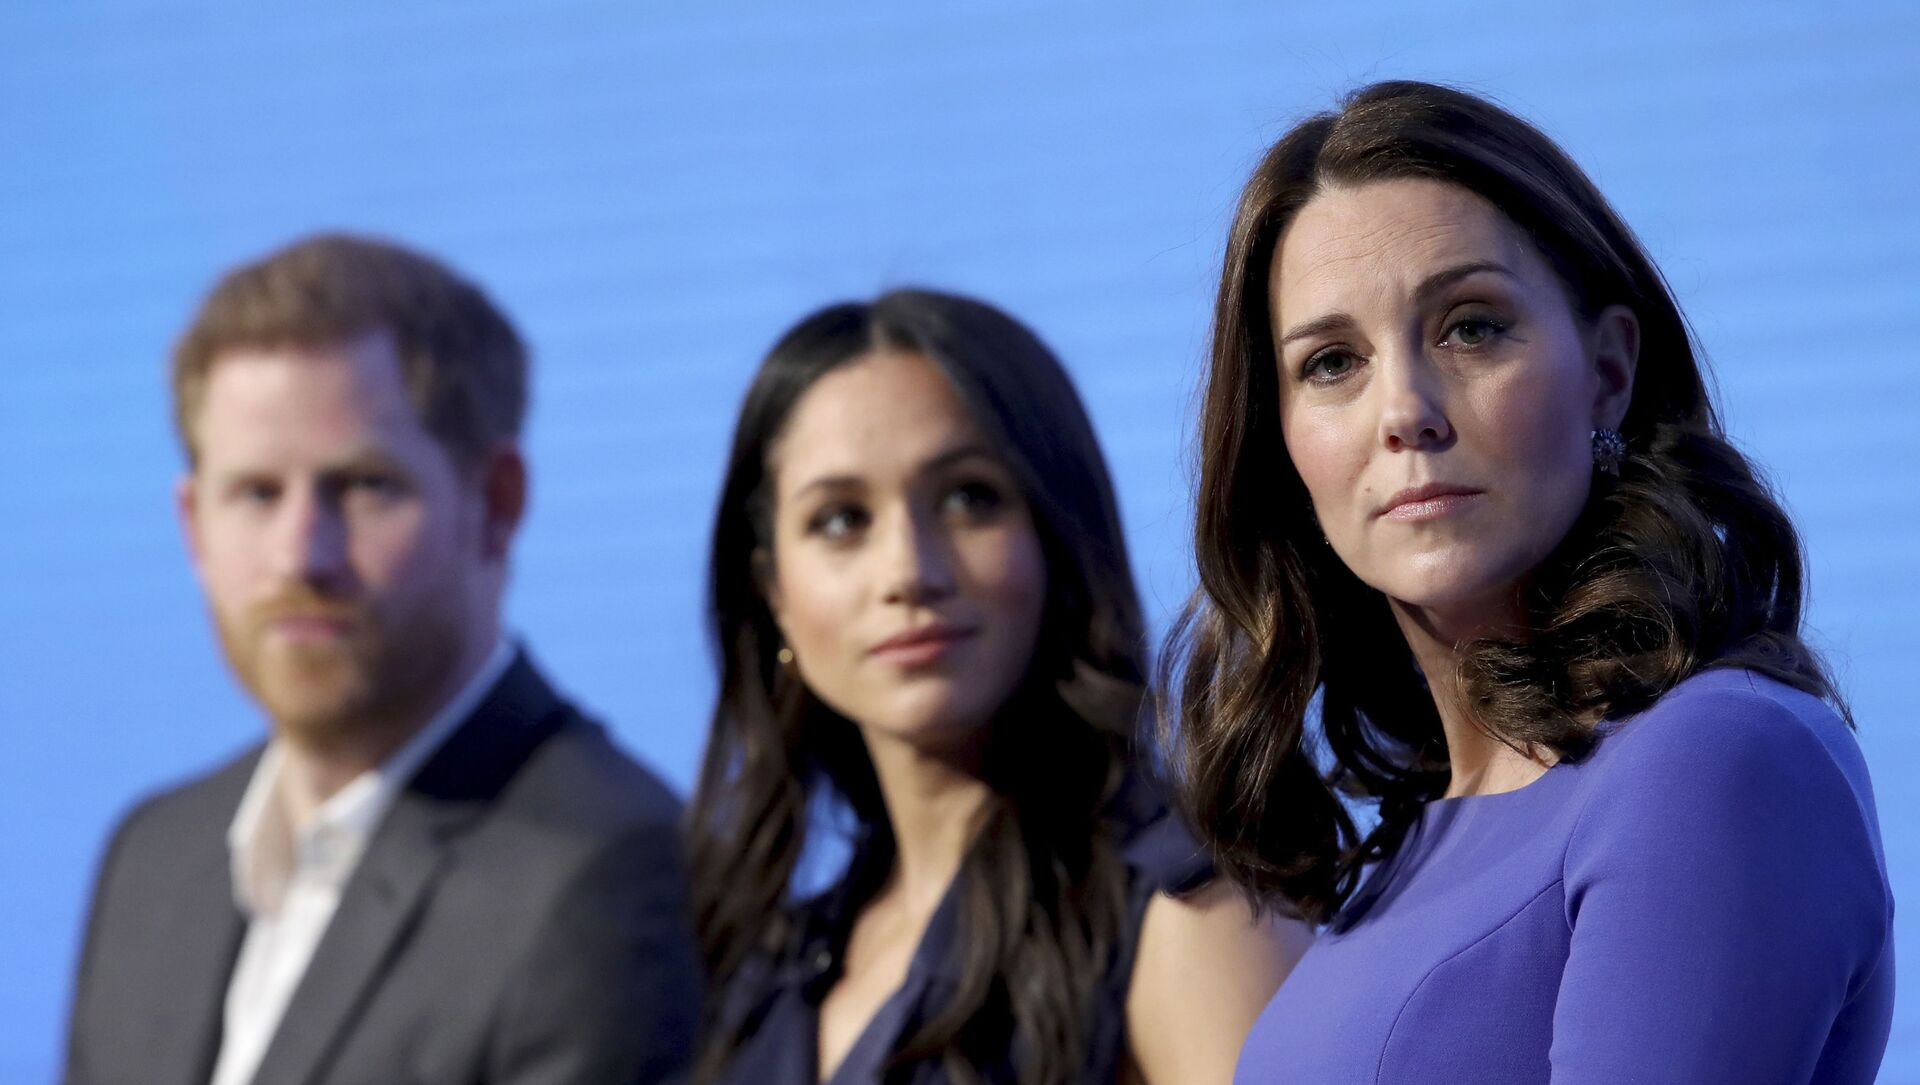 In this Wednesday, Feb. 28, 2018 file photo, Britain's Kate, Duchess of Cambridge, right, with Prince Harry and his fiancee Meghan Markle attend the first annual Royal Foundation Forum in London. - Sputnik International, 1920, 04.08.2021